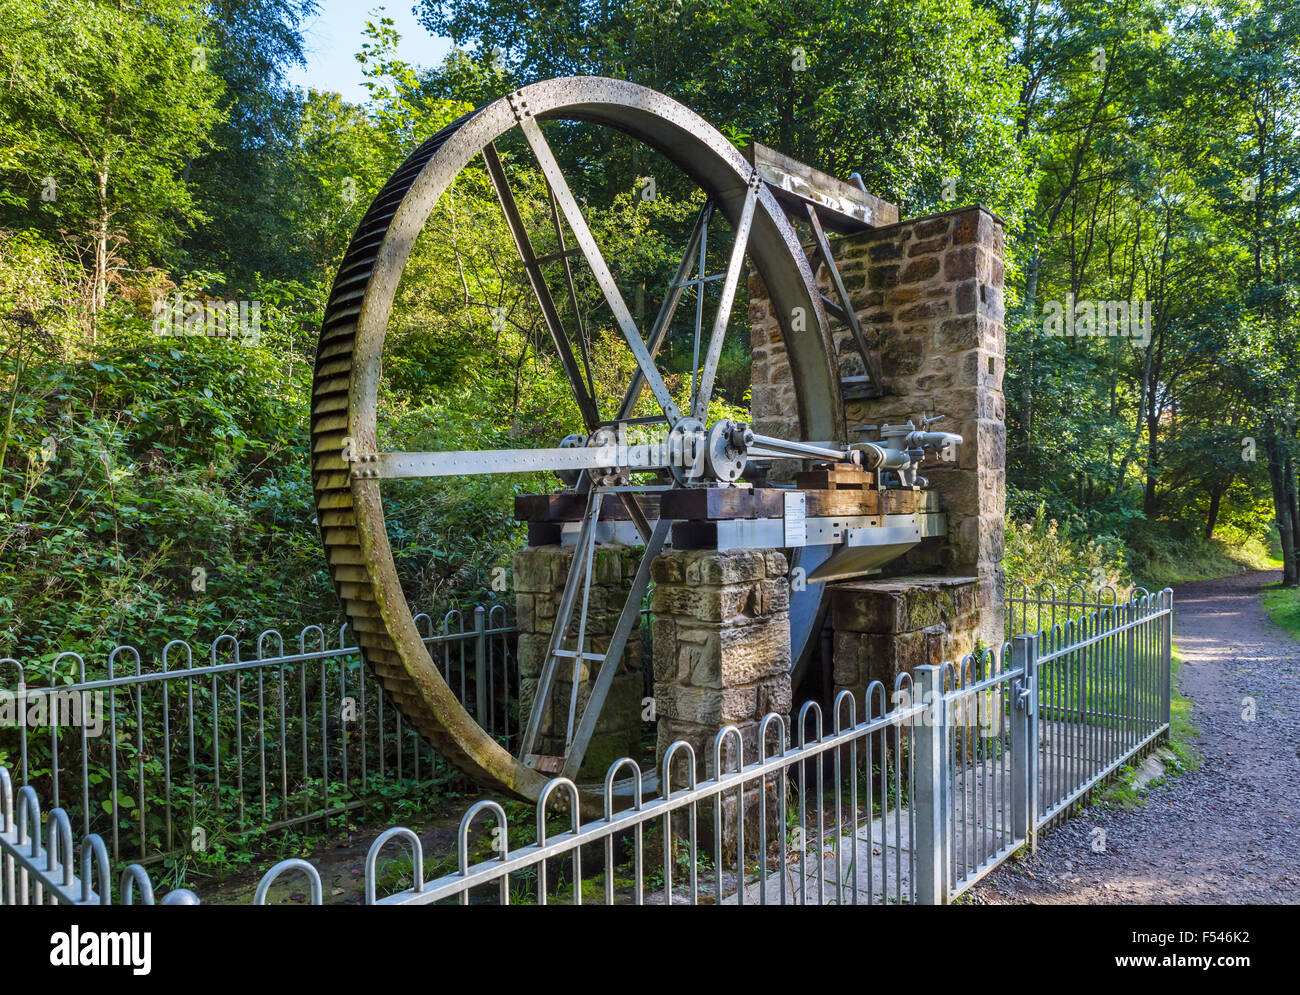 Water wheel by the side of the trail to the Power House at Cragside, Rothbury, Northumberland, England, UK - Stock Image